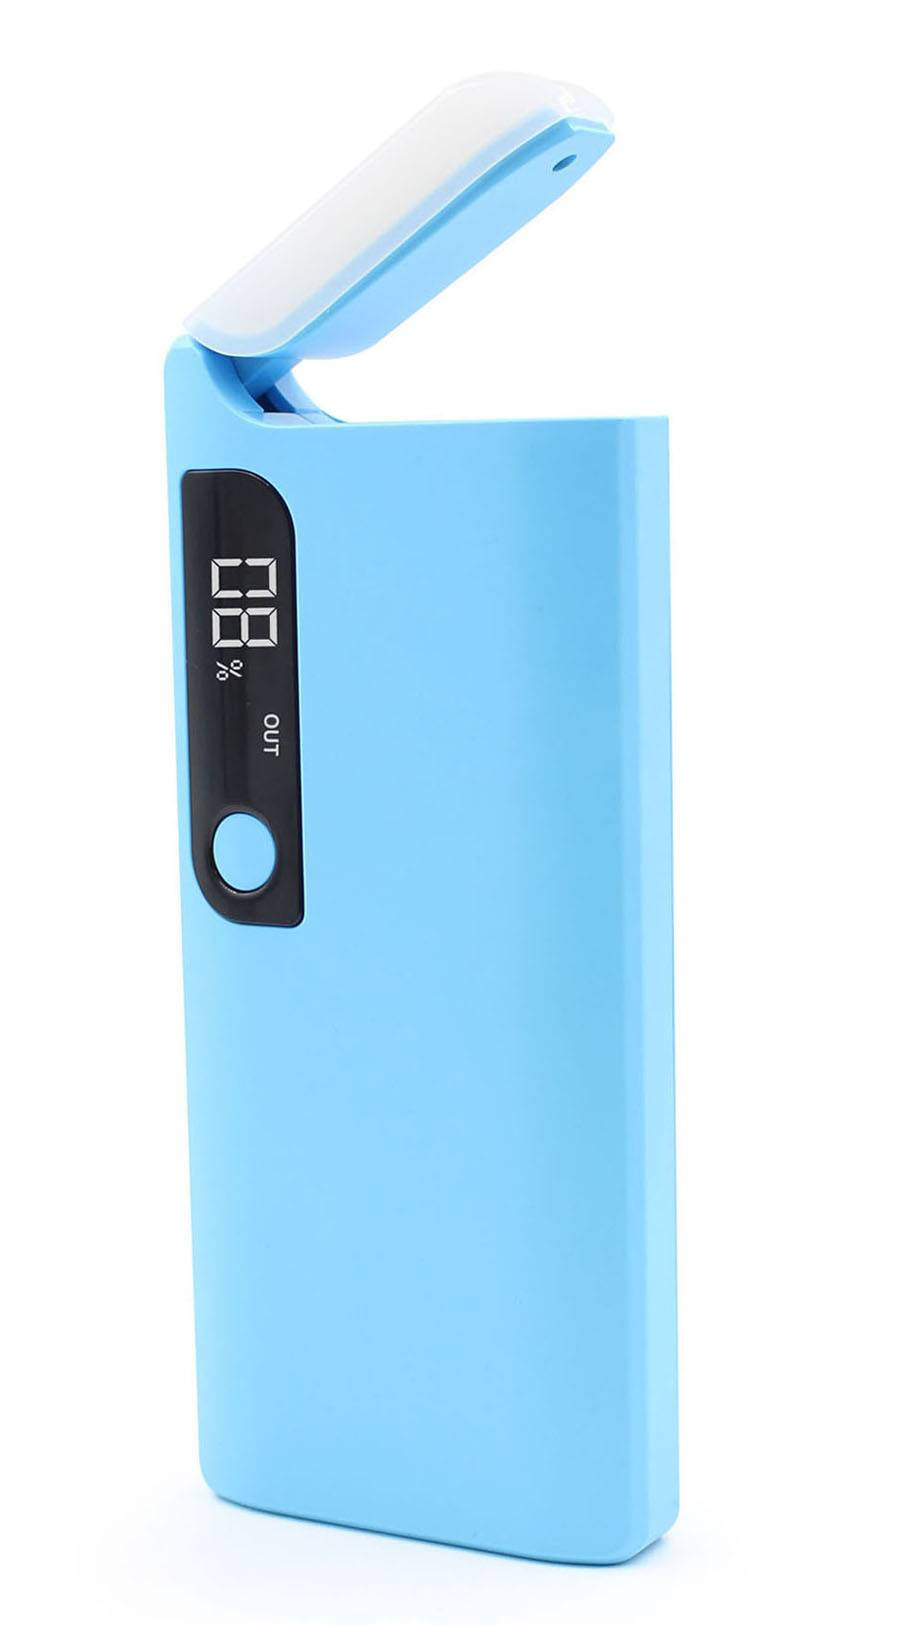 SJ-Y130DT  11000mAh  latest LCD dual USB high quality strong capacity potable power bank with LED